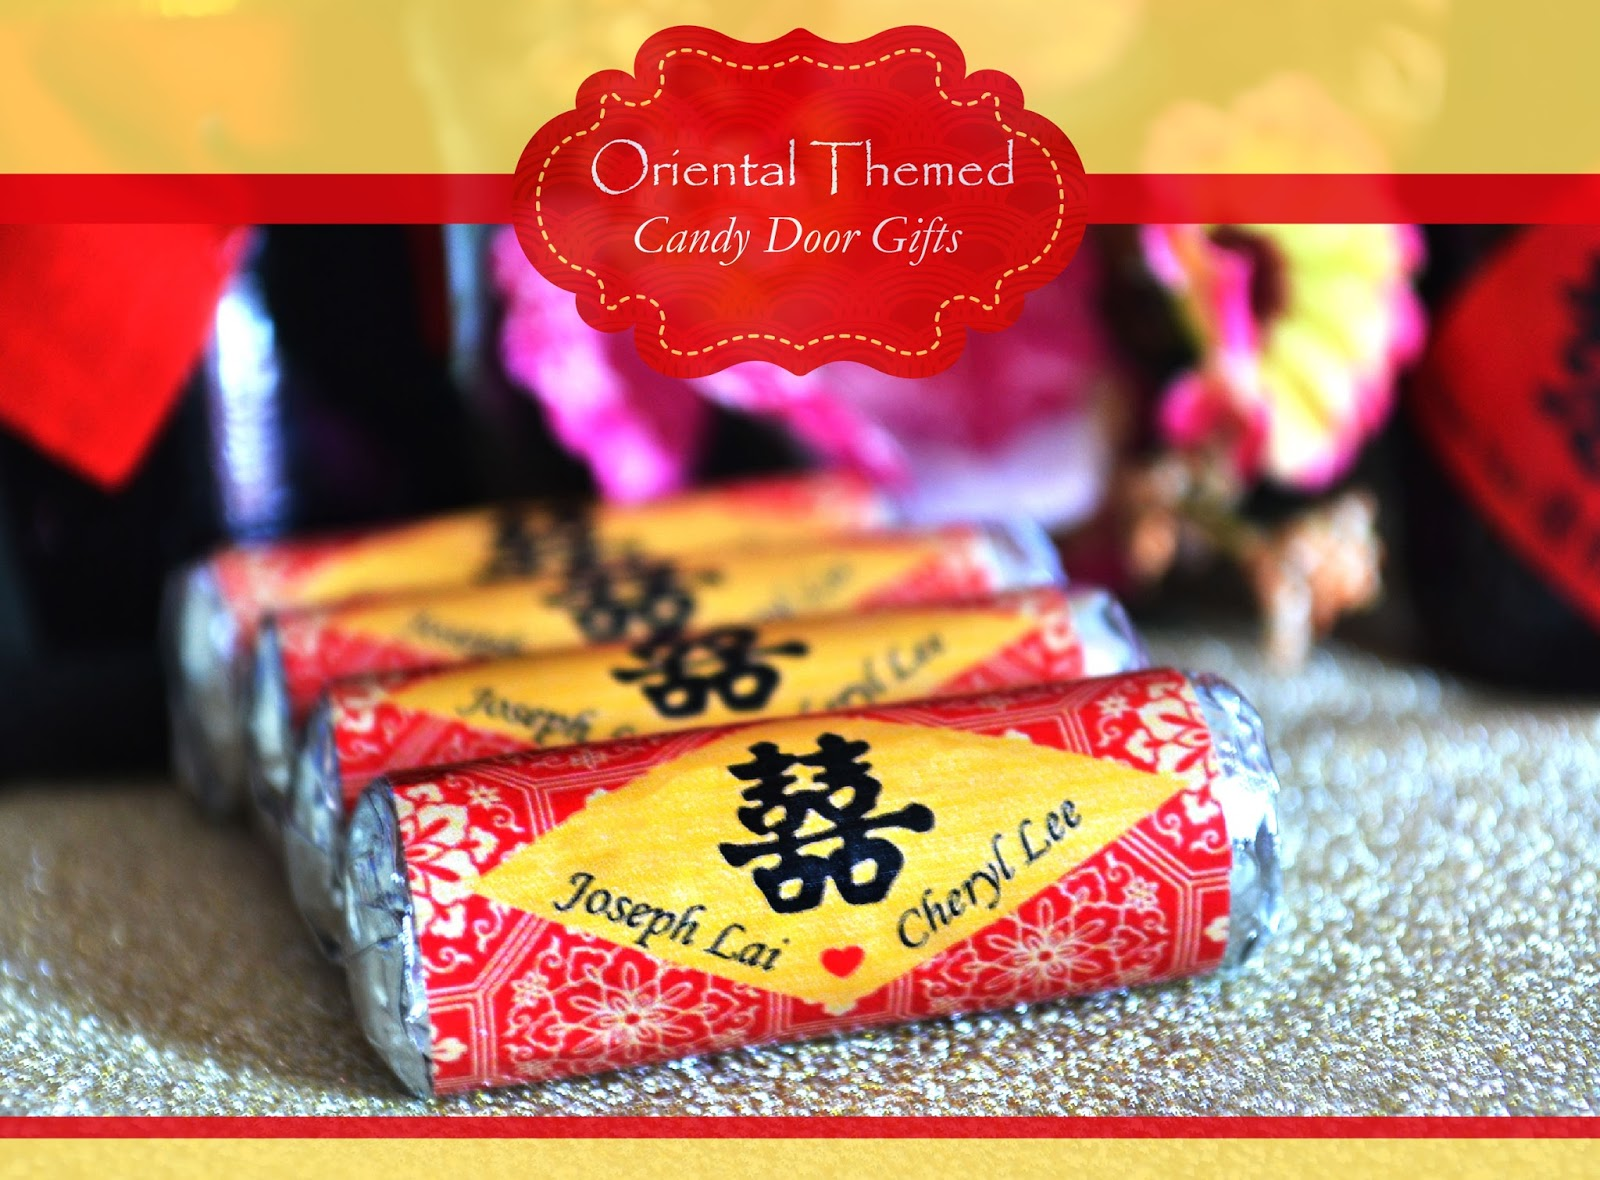 There candy door gifts represent sweetness of the newlyweds and the wrapper is designed according to an Oriental Themed wedding reception. & Wedding Card Malaysia | Crafty Farms Handmade : Oriental Themed ...